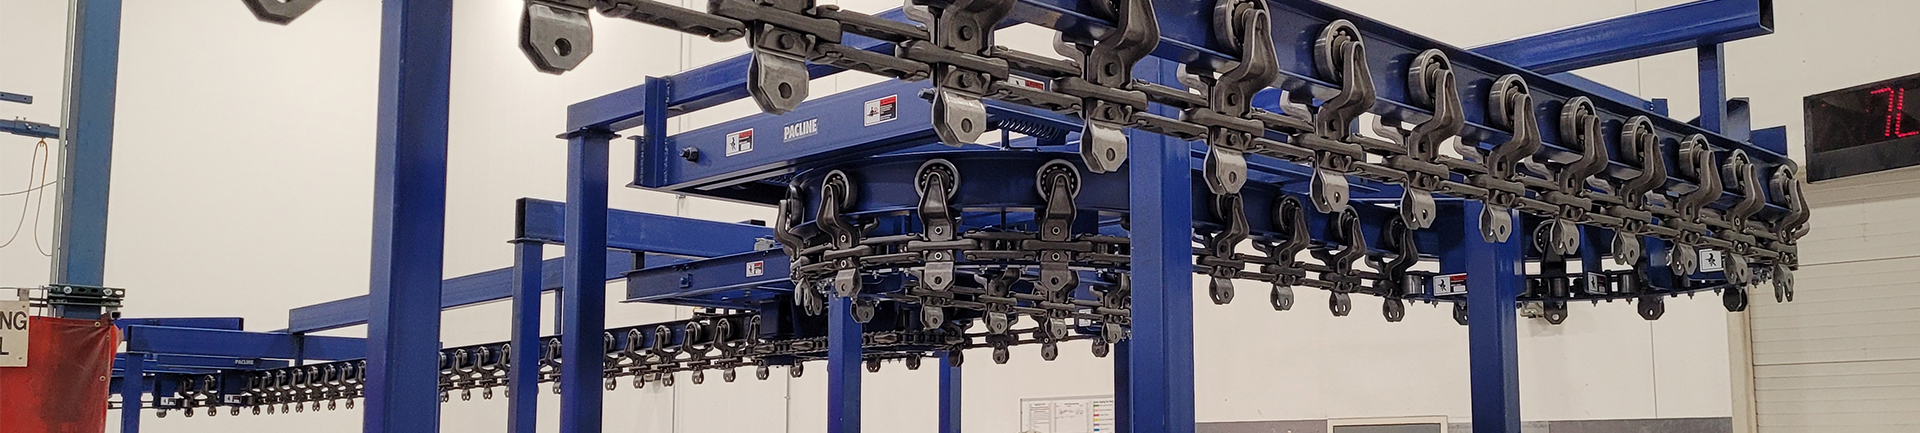 Powered I-beam monorail conveyor systems are an inexpensive material handling option.